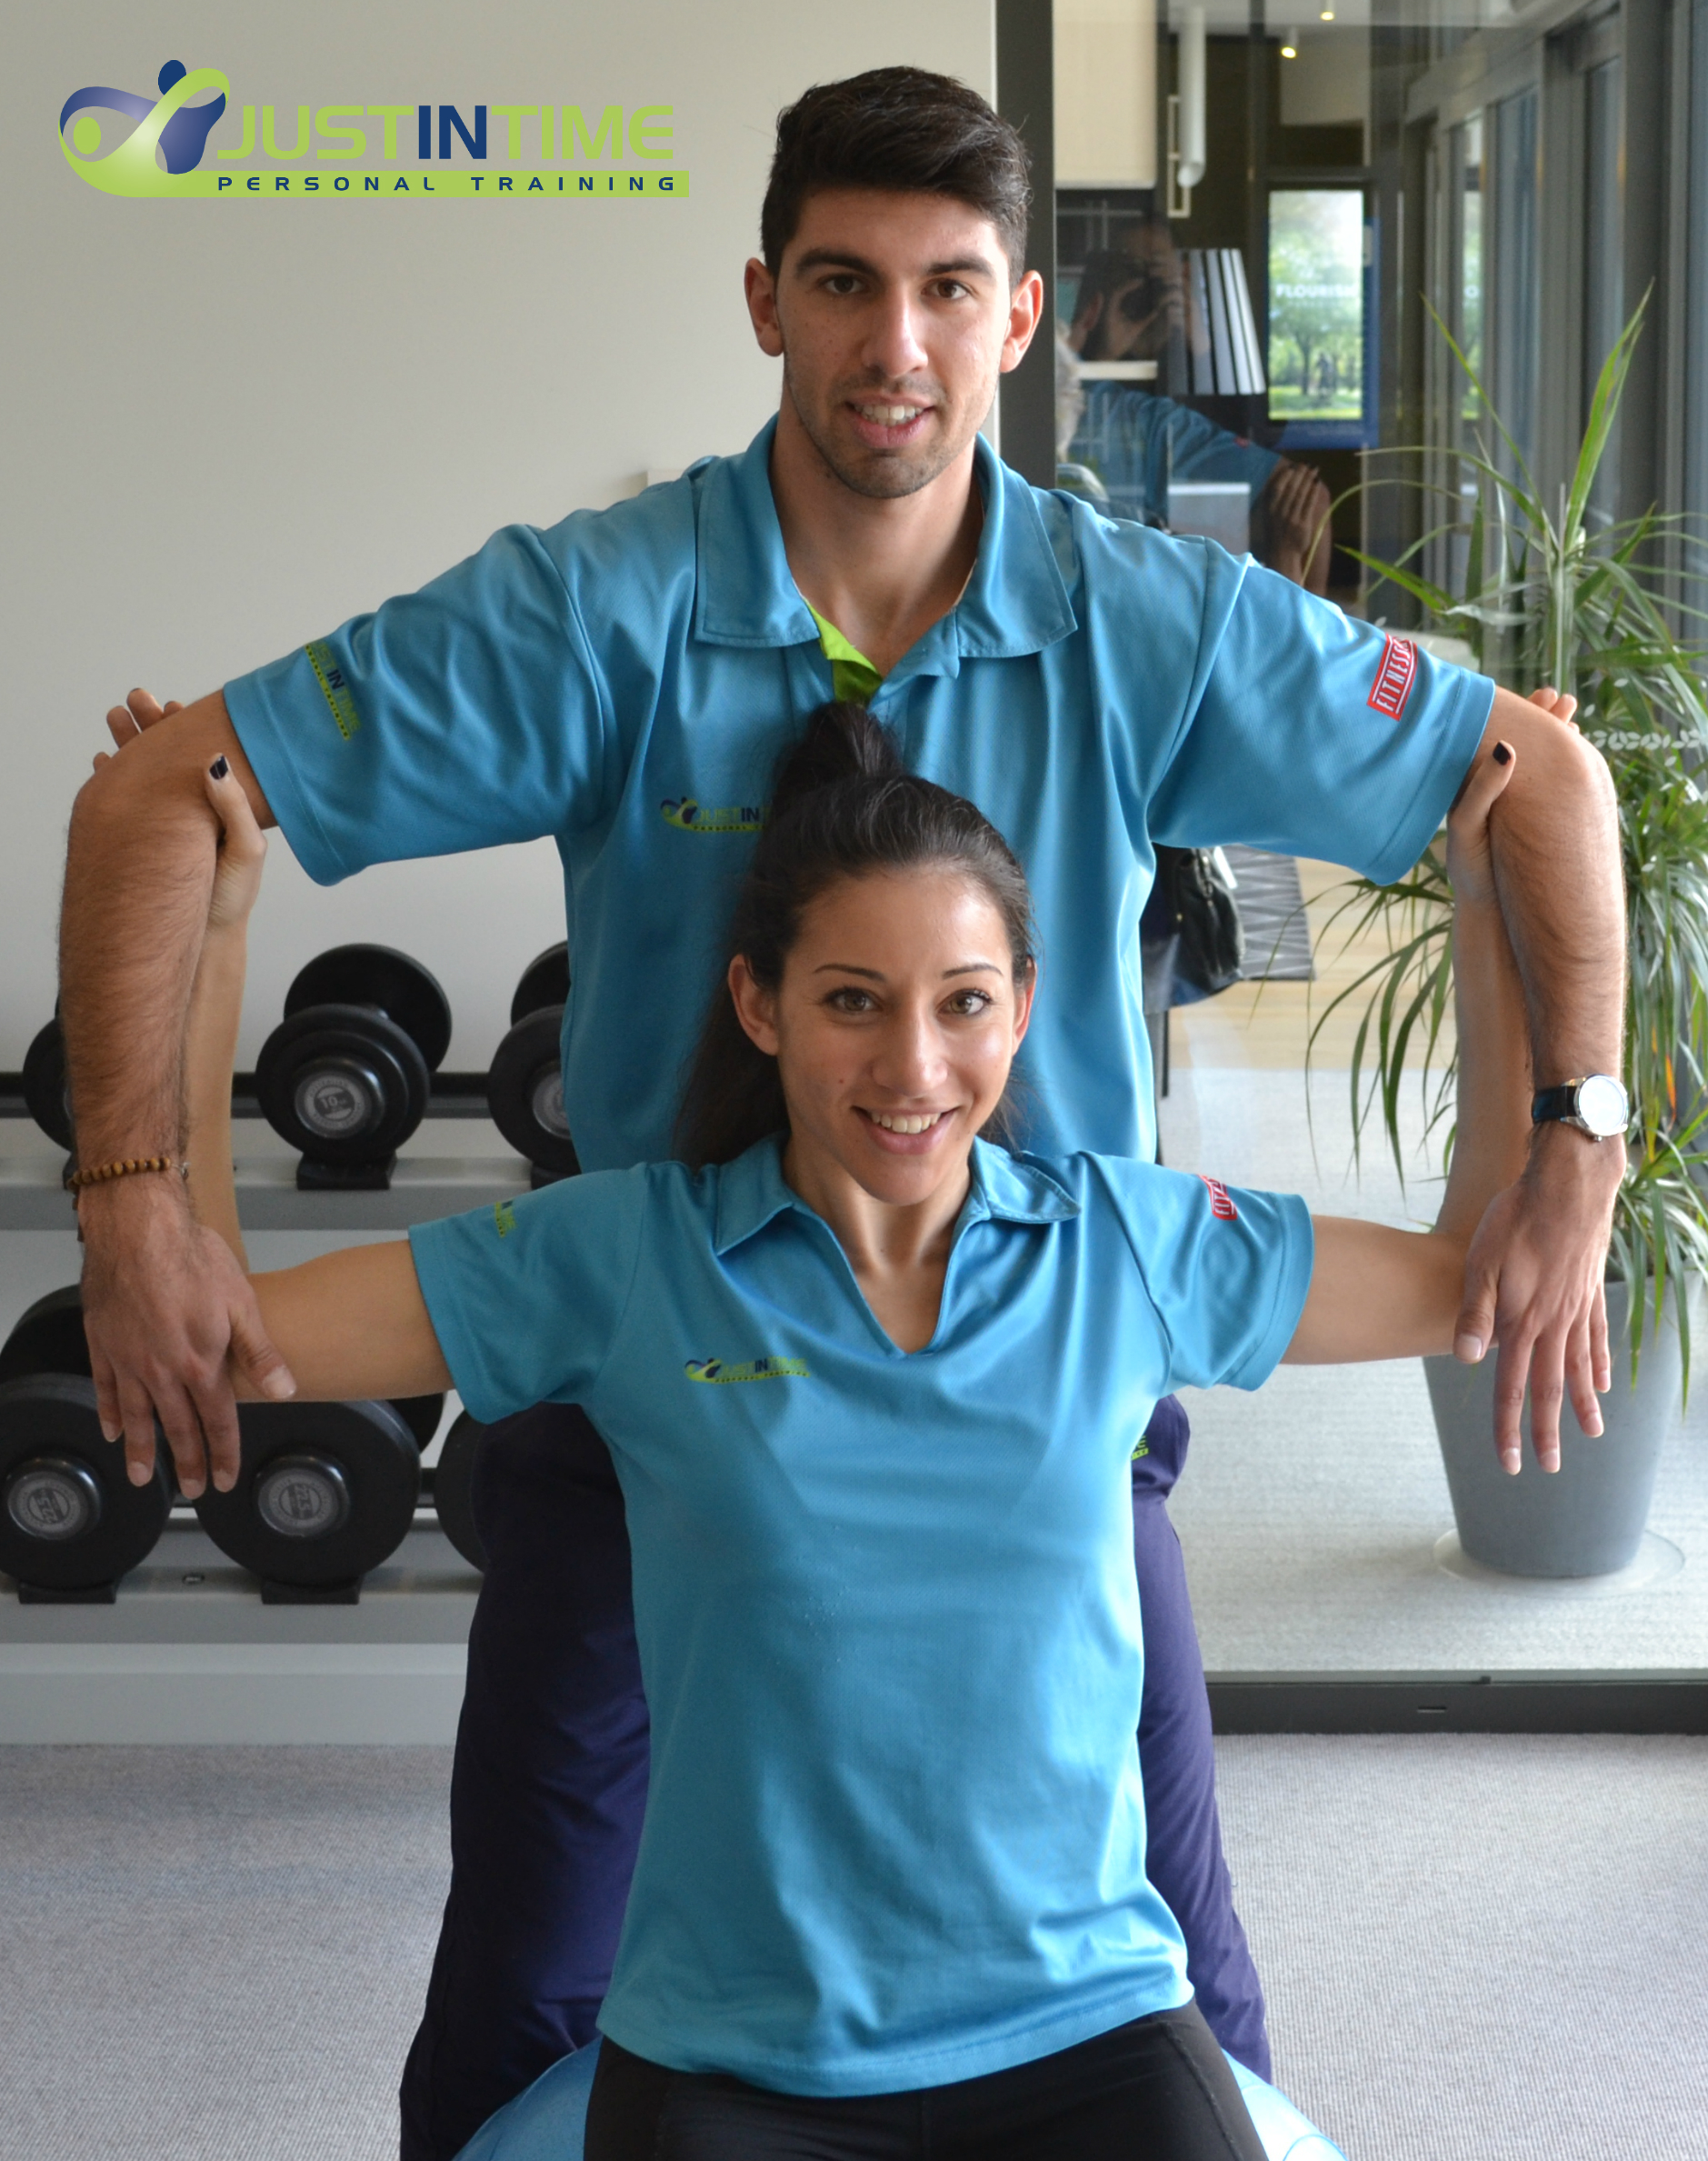 Chest stretch on Swiss Ball - trainer assisted full elbow interlock